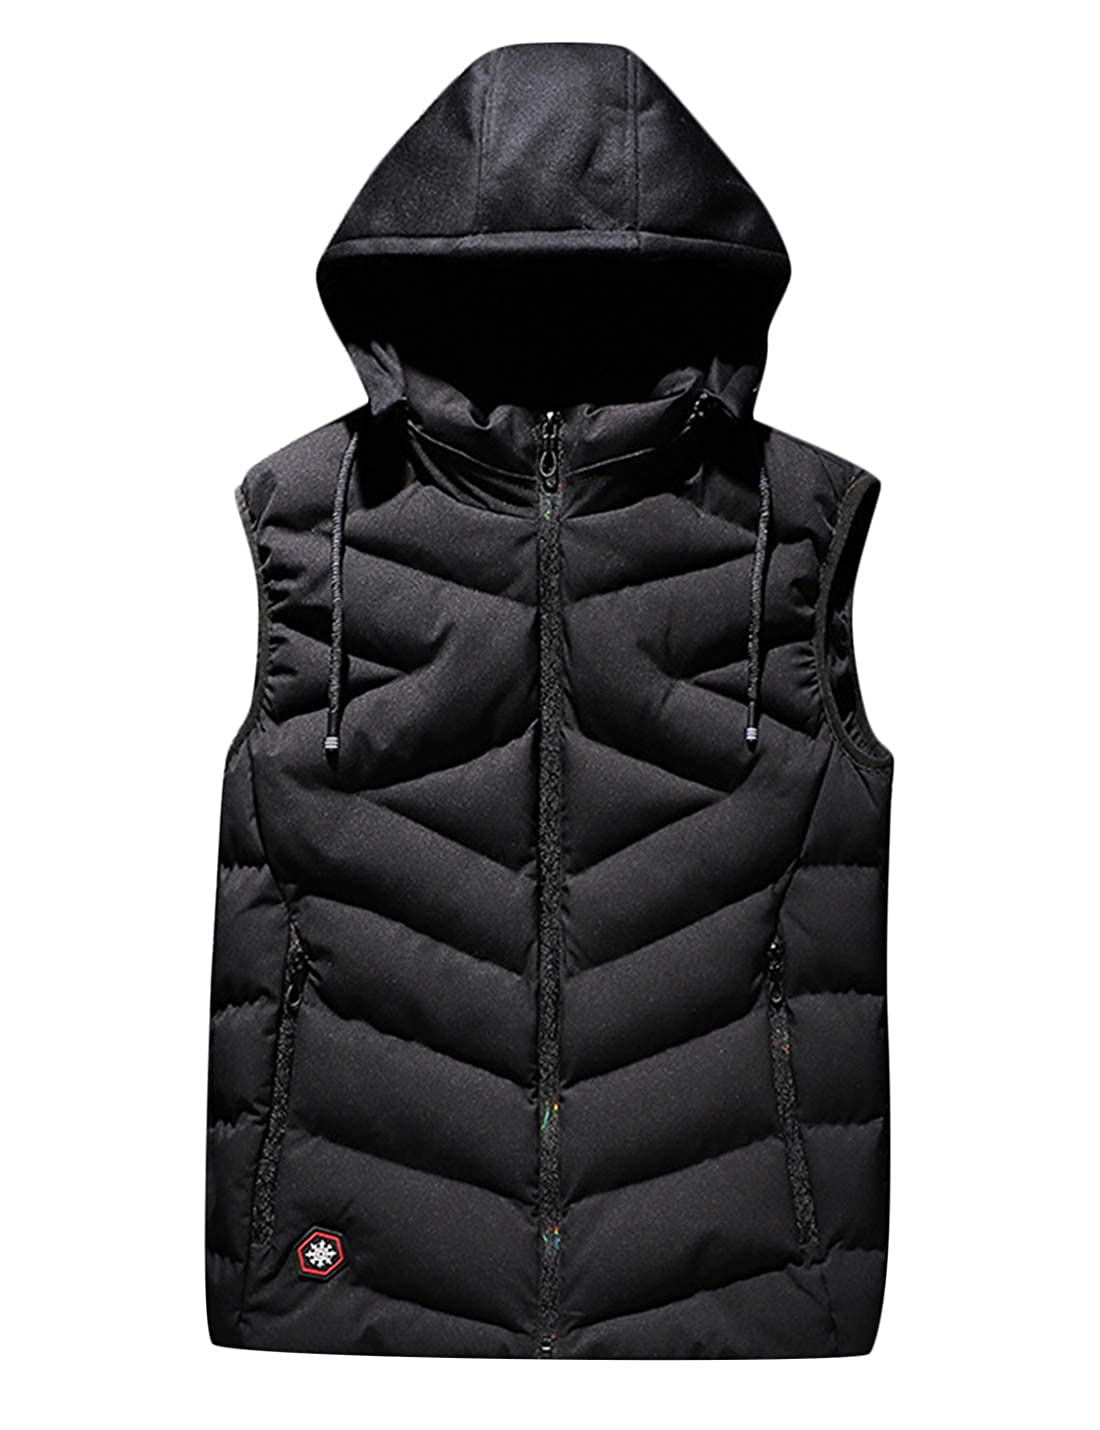 Uaneo Mens Thicken Warm Sleeveless Quilted Puffer Vest Jacket with Black Hood